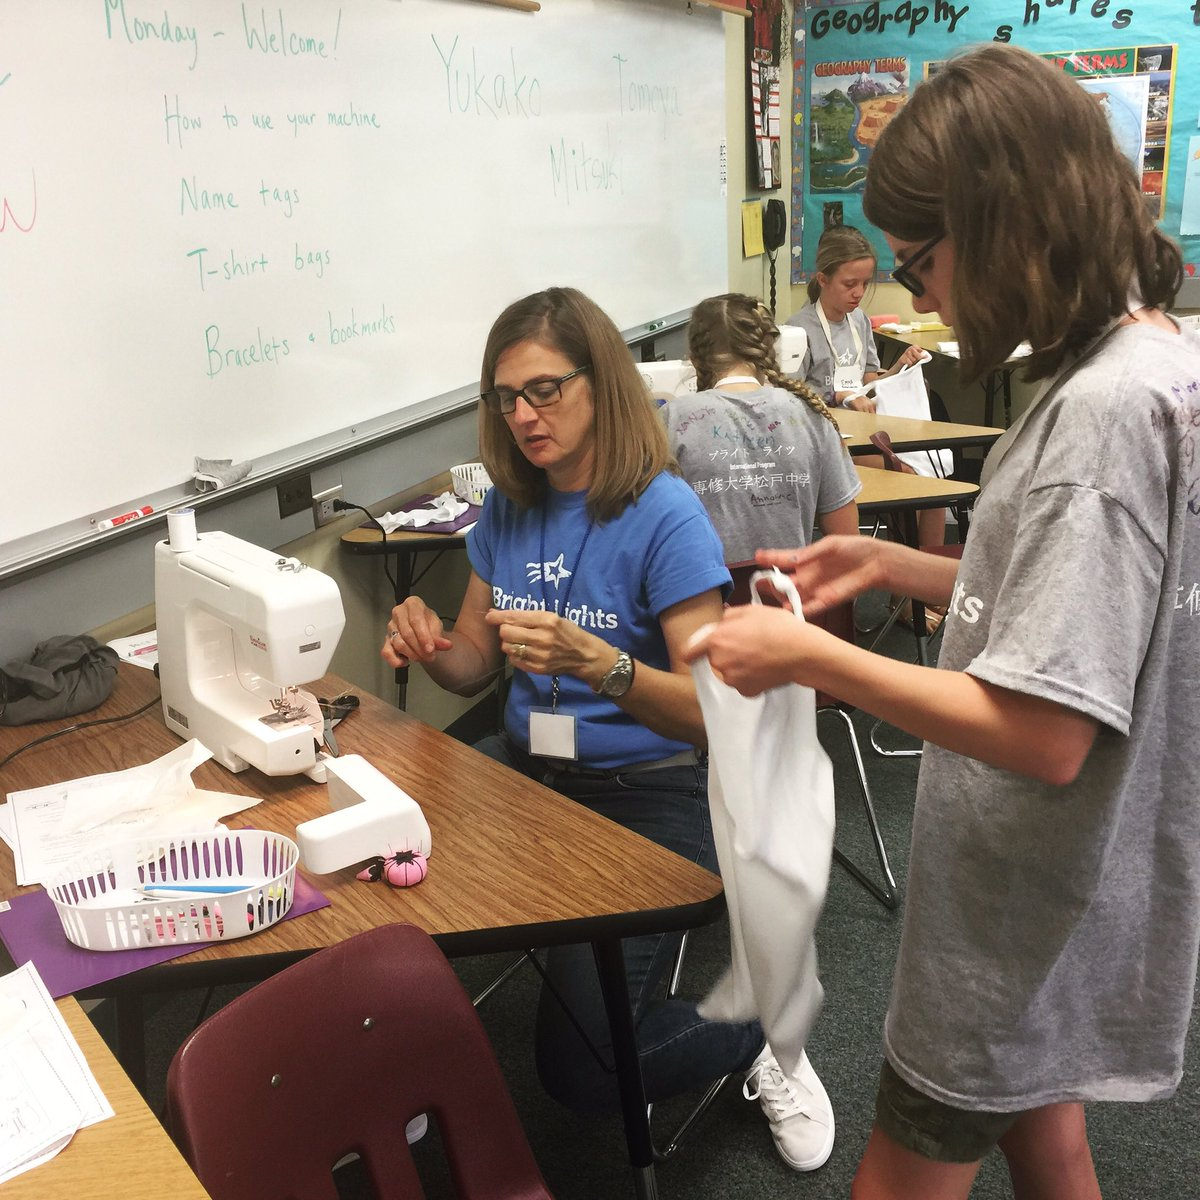 Bright Lights students are making bags out of t-shirts to bring all their projects home in Sew, SO Easy class #brightlights <br>http://pic.twitter.com/sJBENLGYVi &ndash; bij Lux Middle School